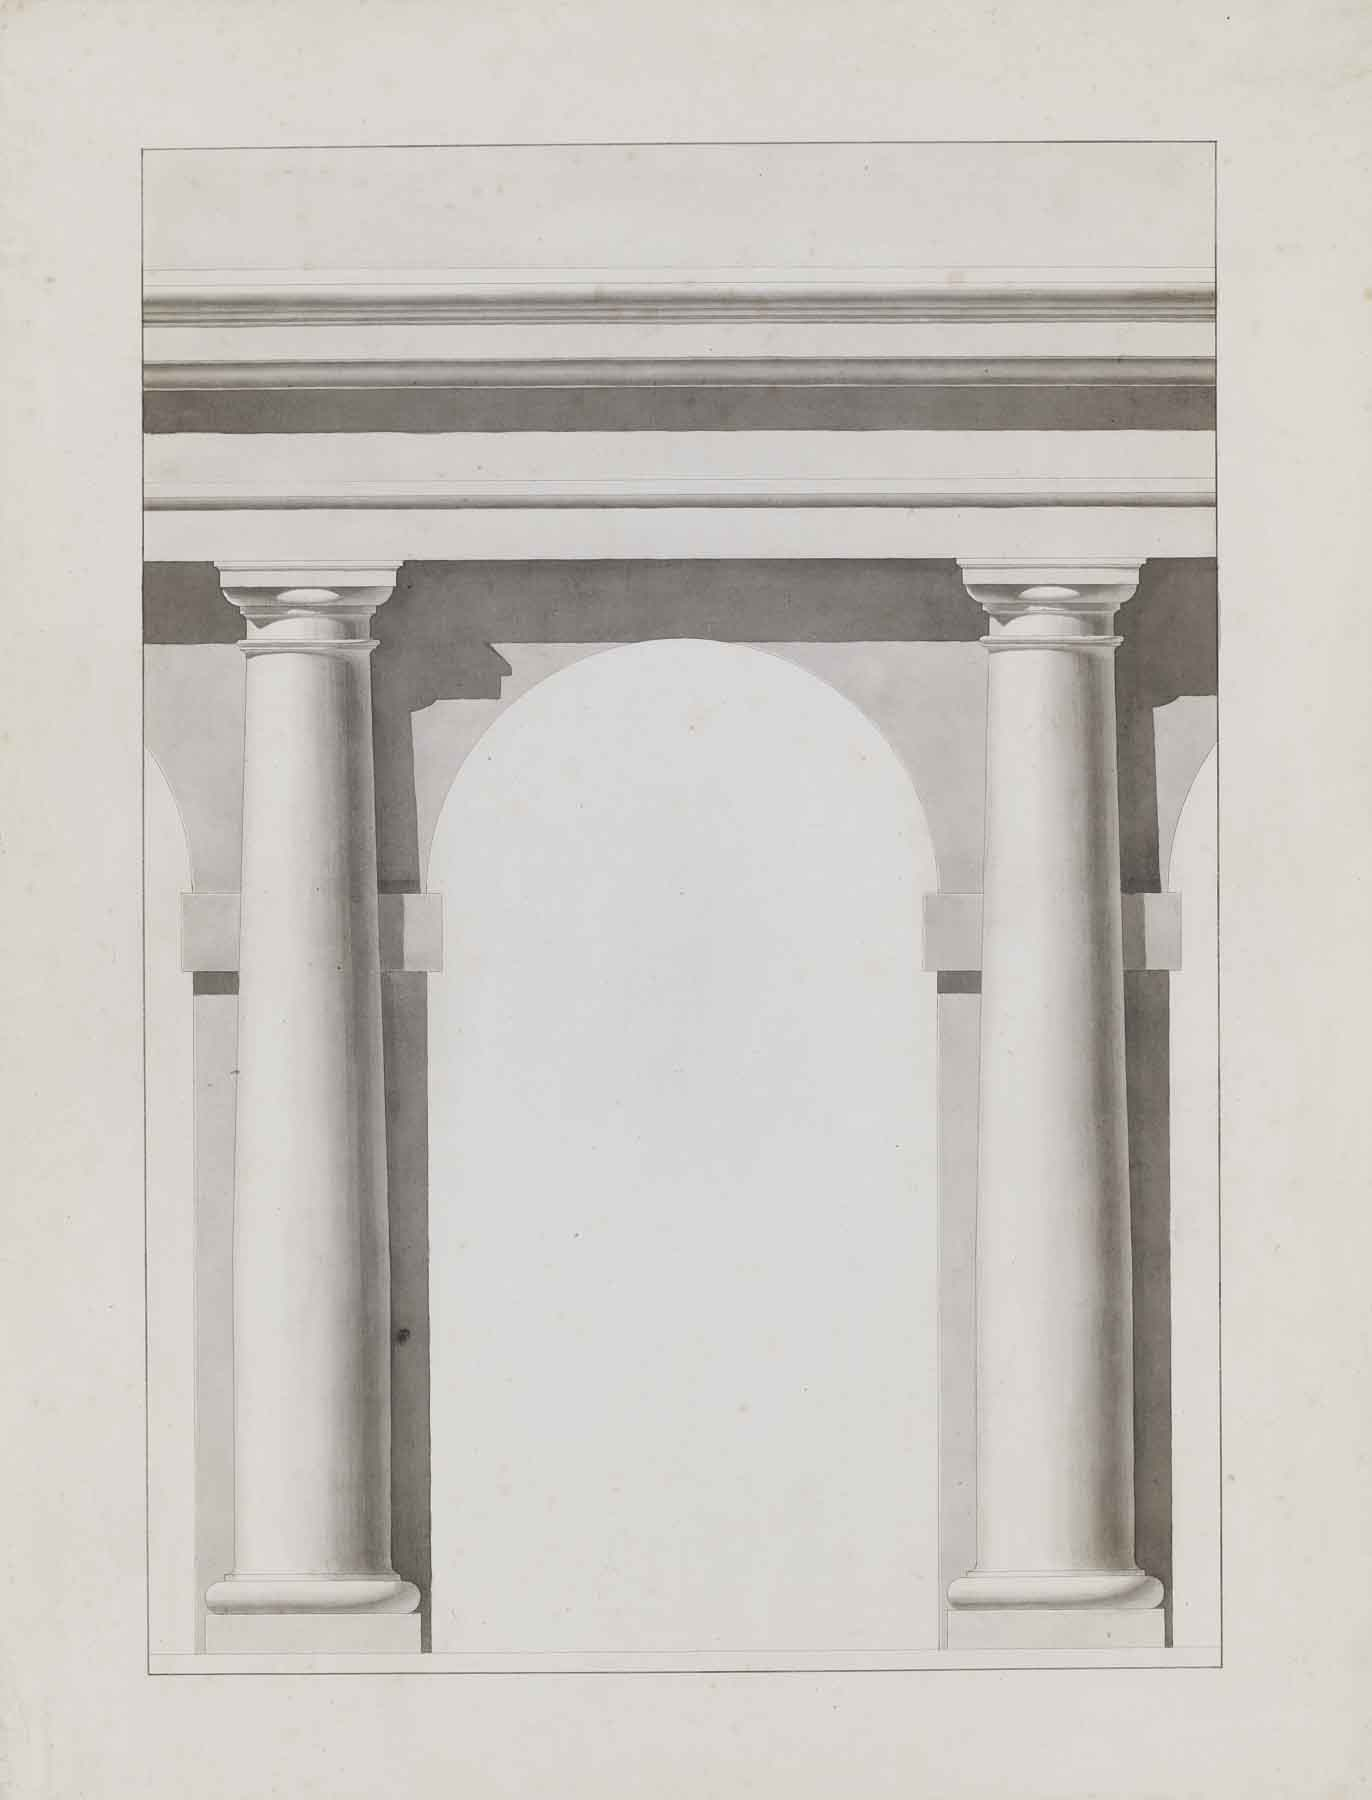 """Théodore Olivier, Study of Columns, c. 1840,ink and lavis (wash) on paper,31 1/2 x 25 1/2"""" framed"""